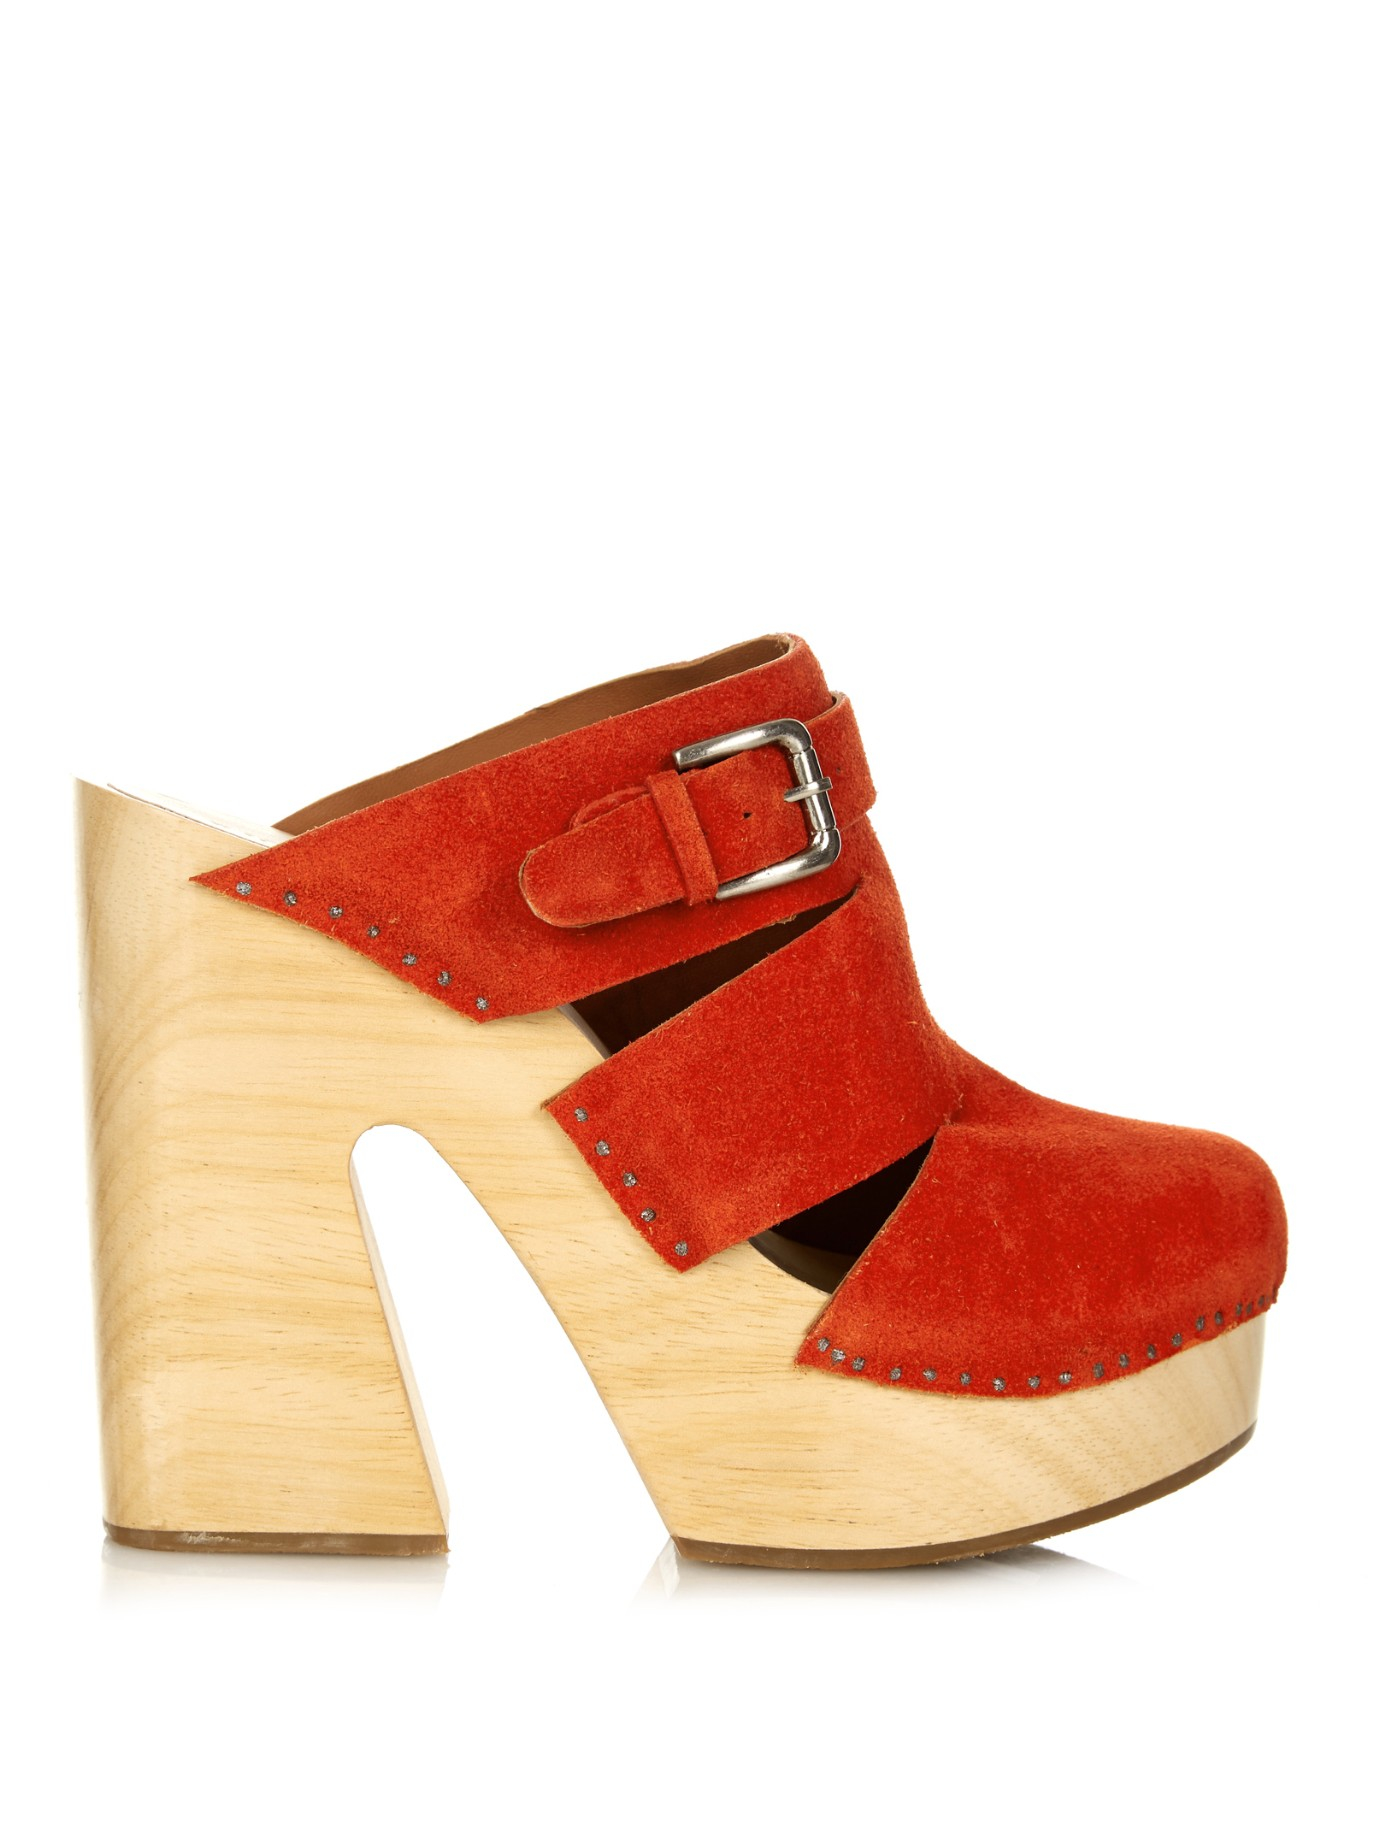 e8ec8bffba06 Lyst - Rachel Comey Fiero Suede Clogs in Orange